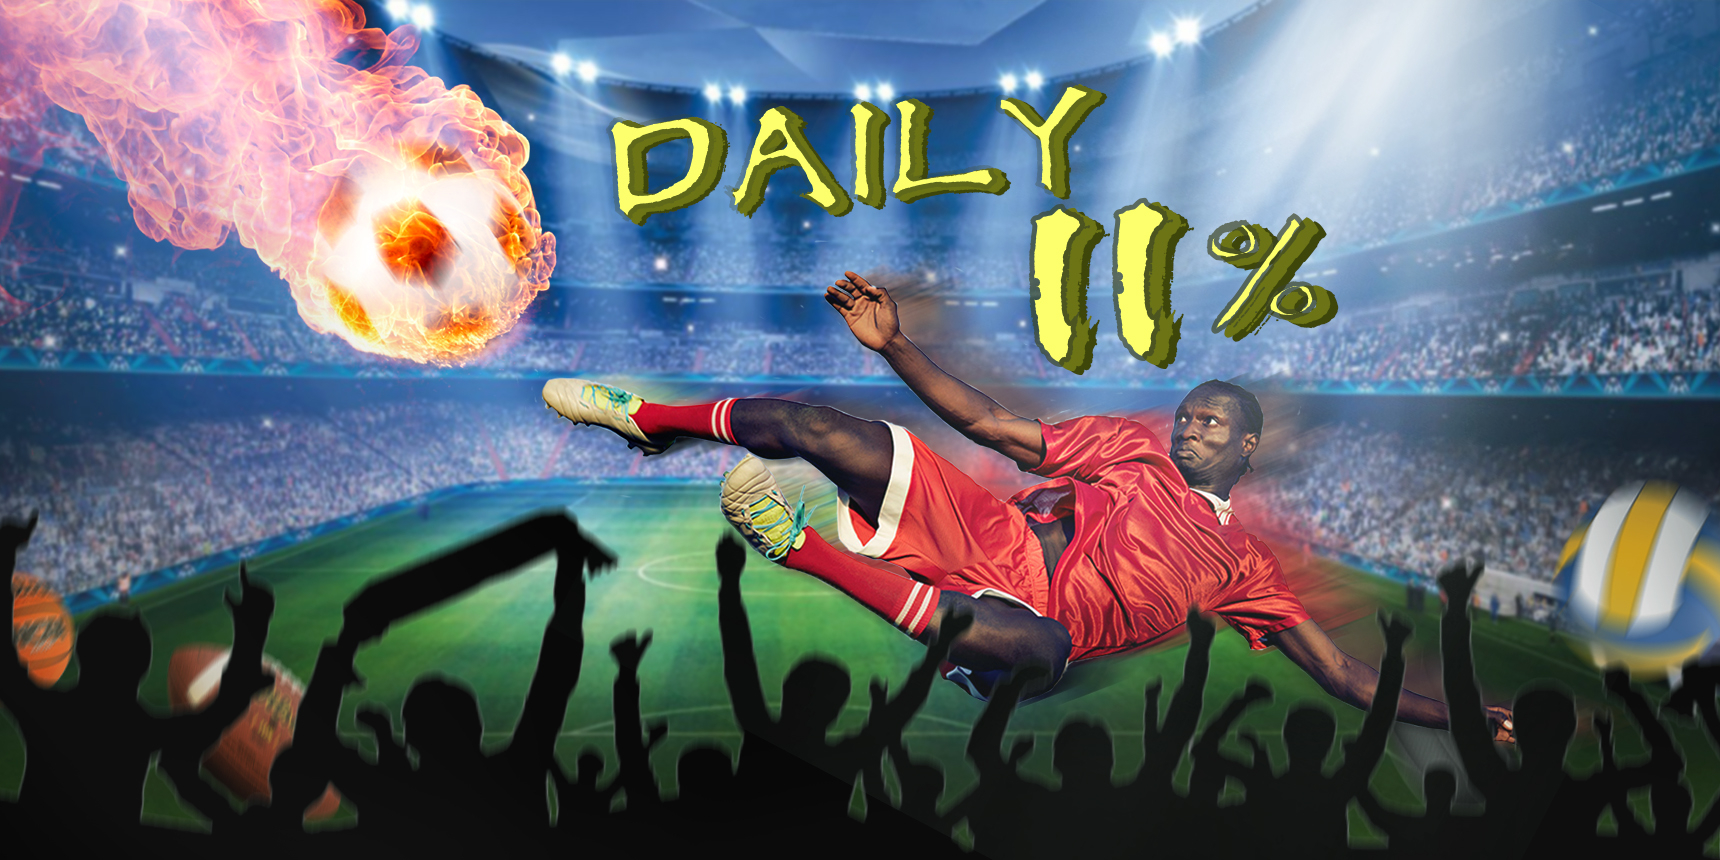 Sports Daily 11% -onlinelivecasino33.com